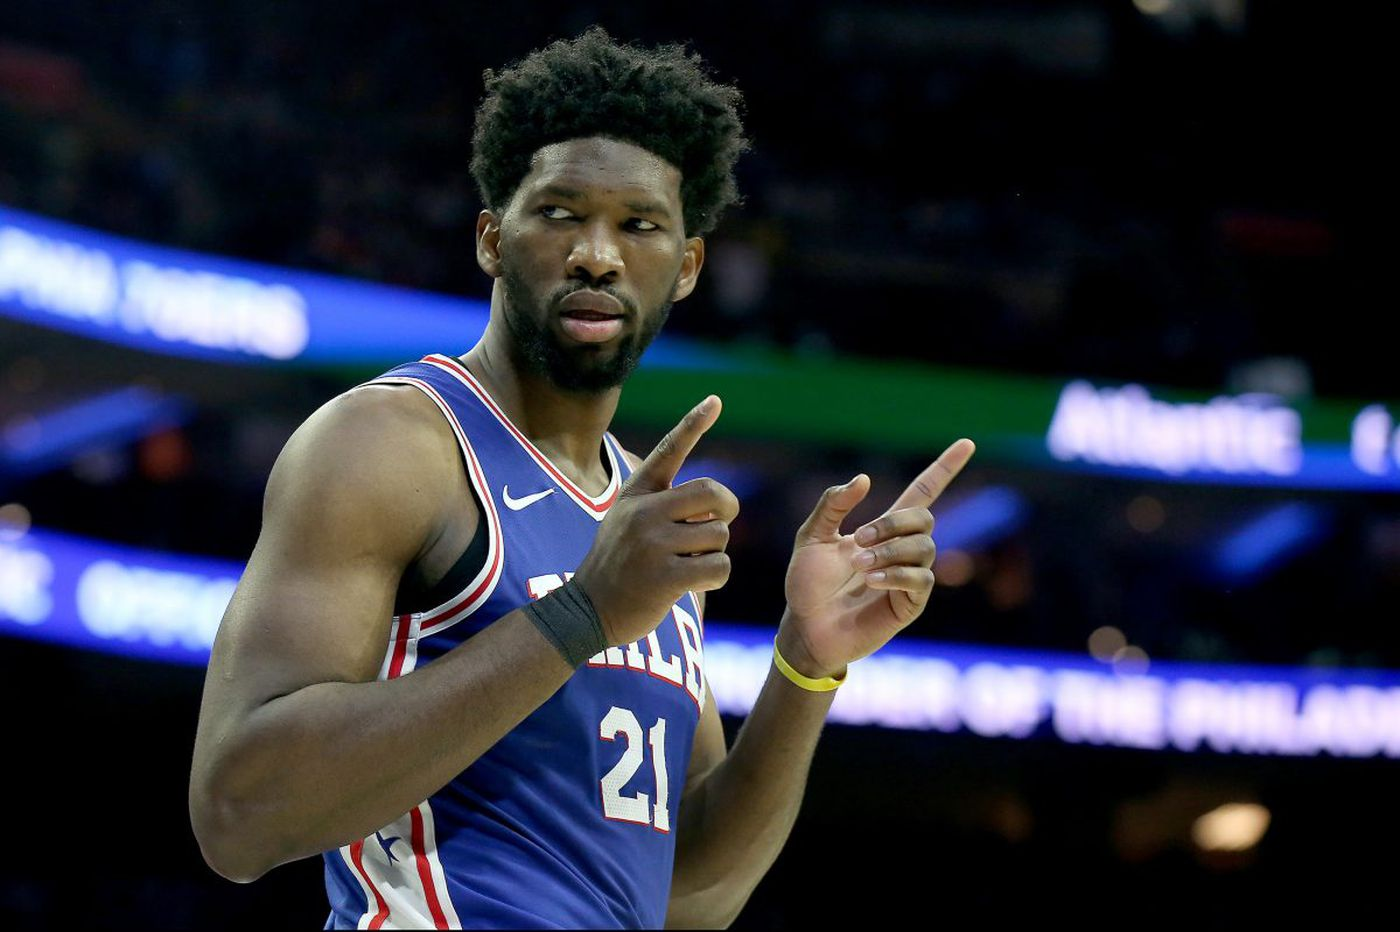 Sixers' Joel Embiid picked by Steph Curry's team in NBA all-star draft